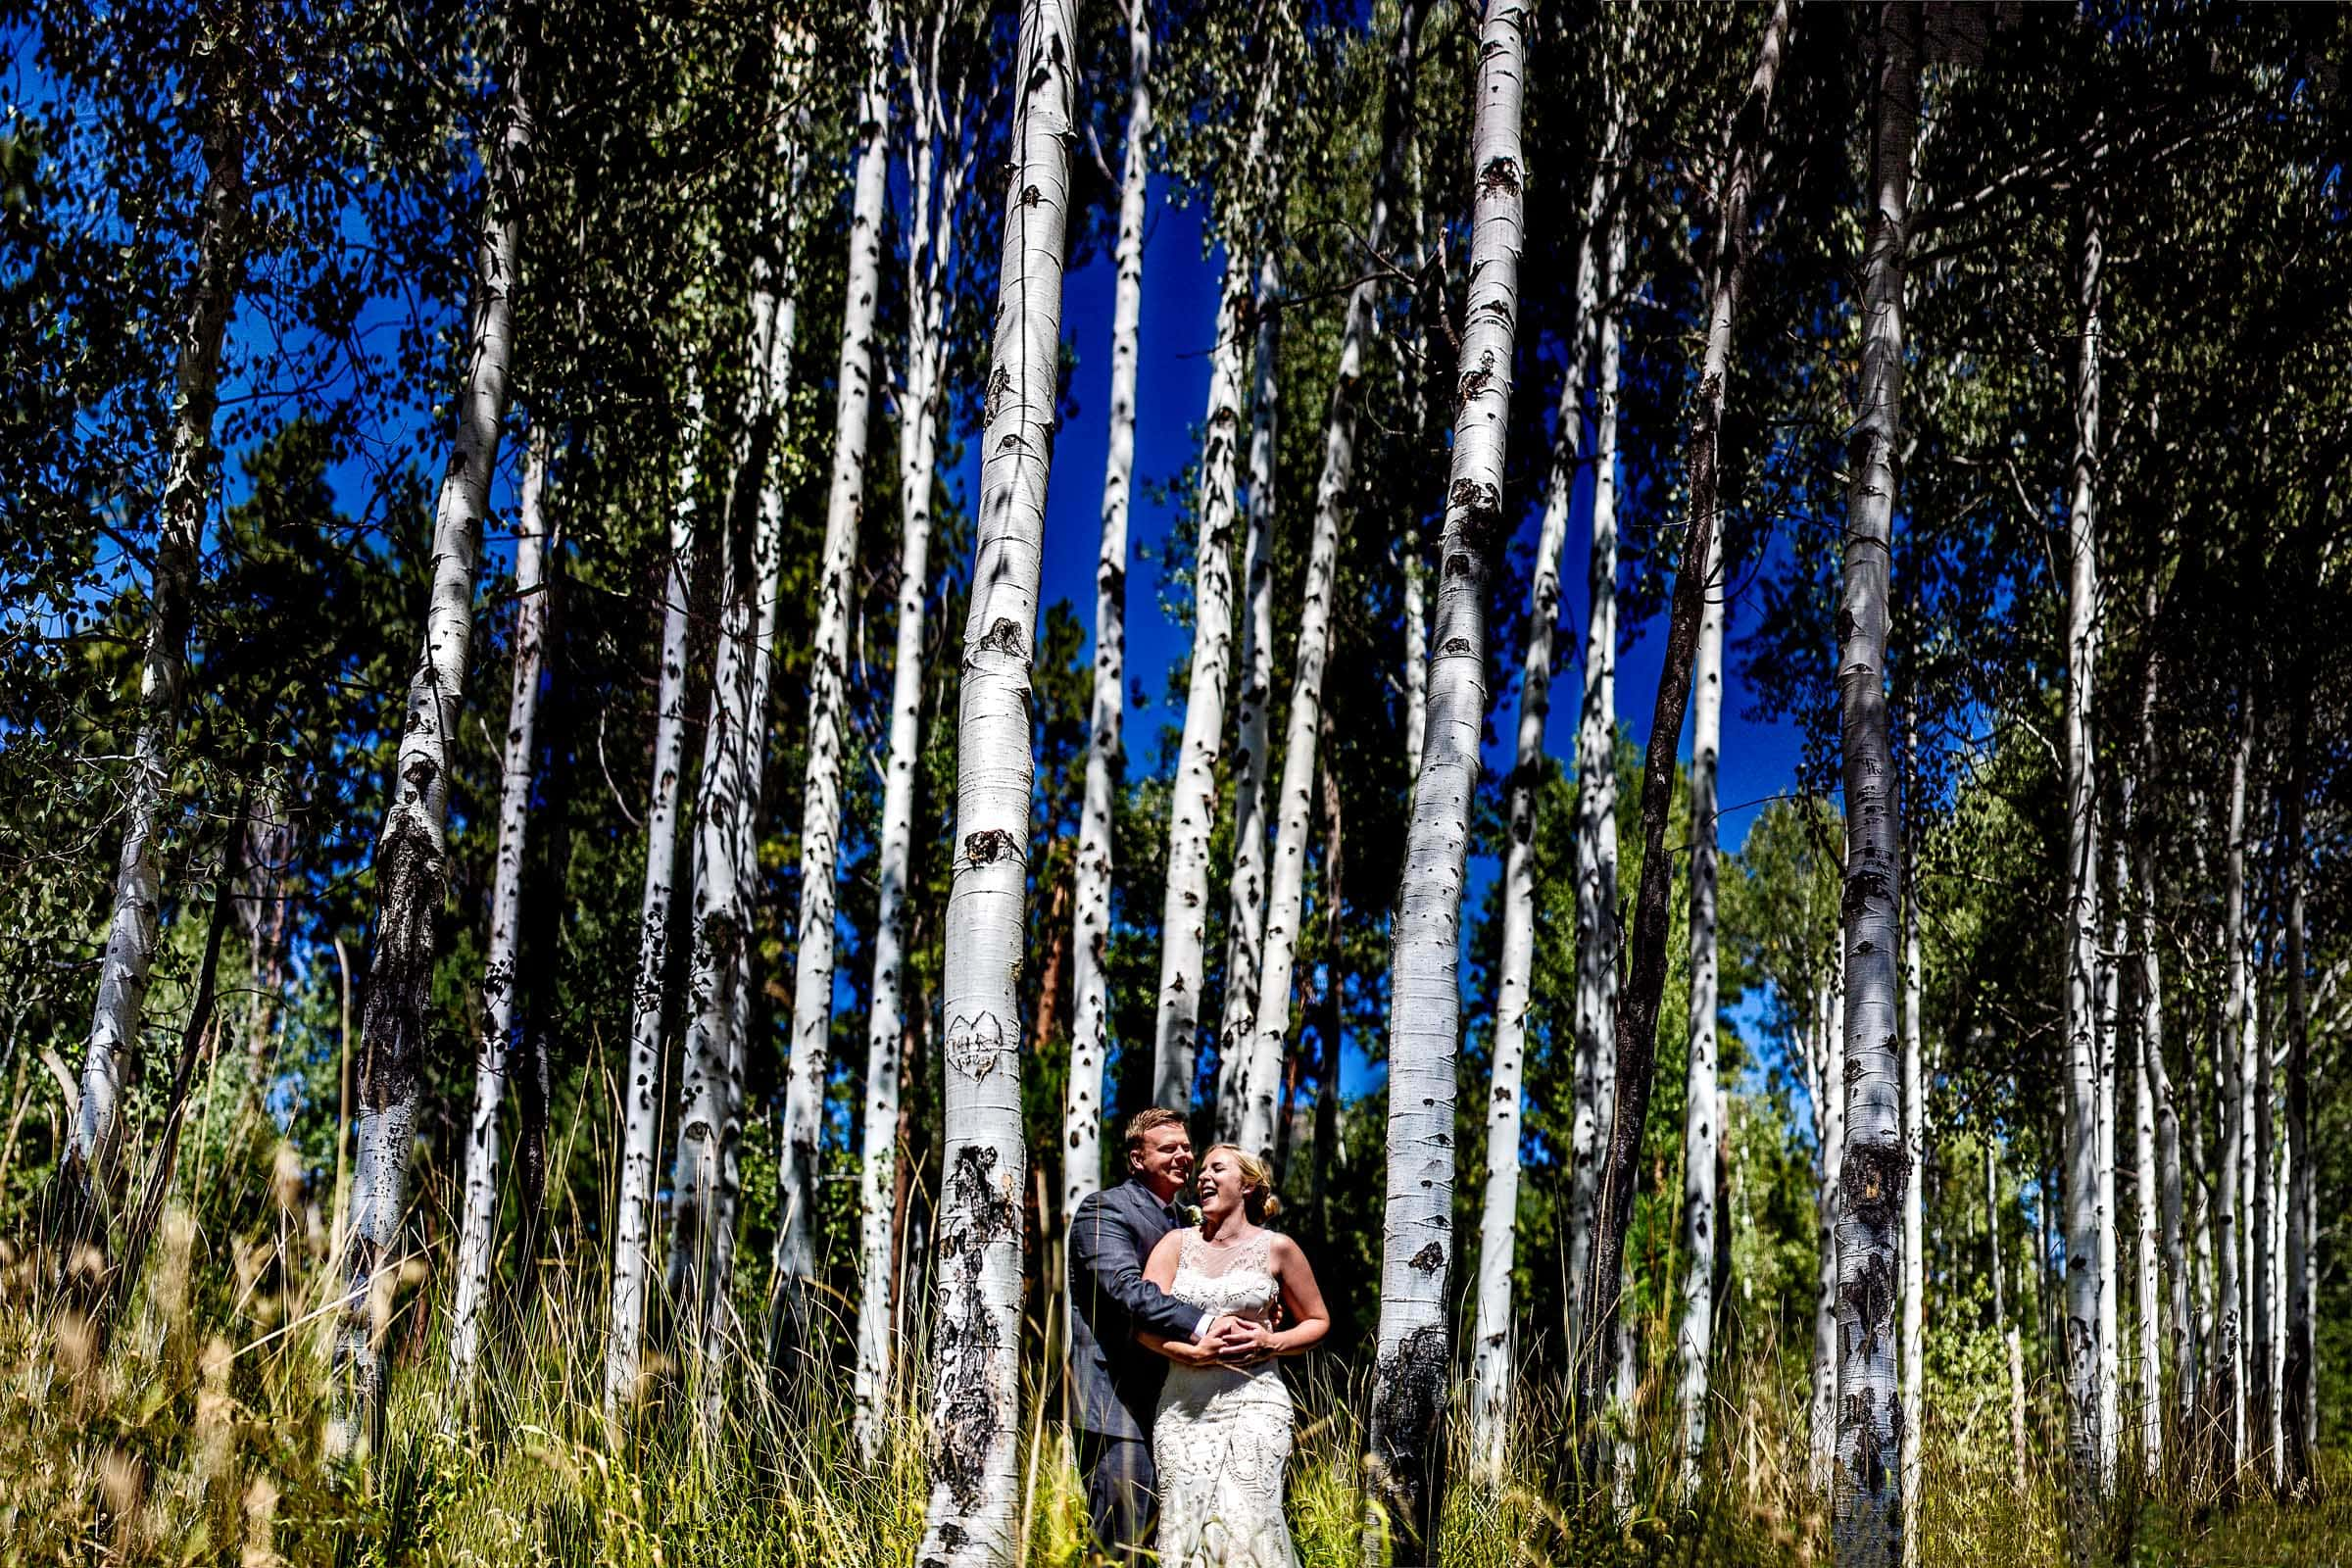 Bride and groom creative portrait in birch trees at their Black Butte Ranch wedding in Central Oregon